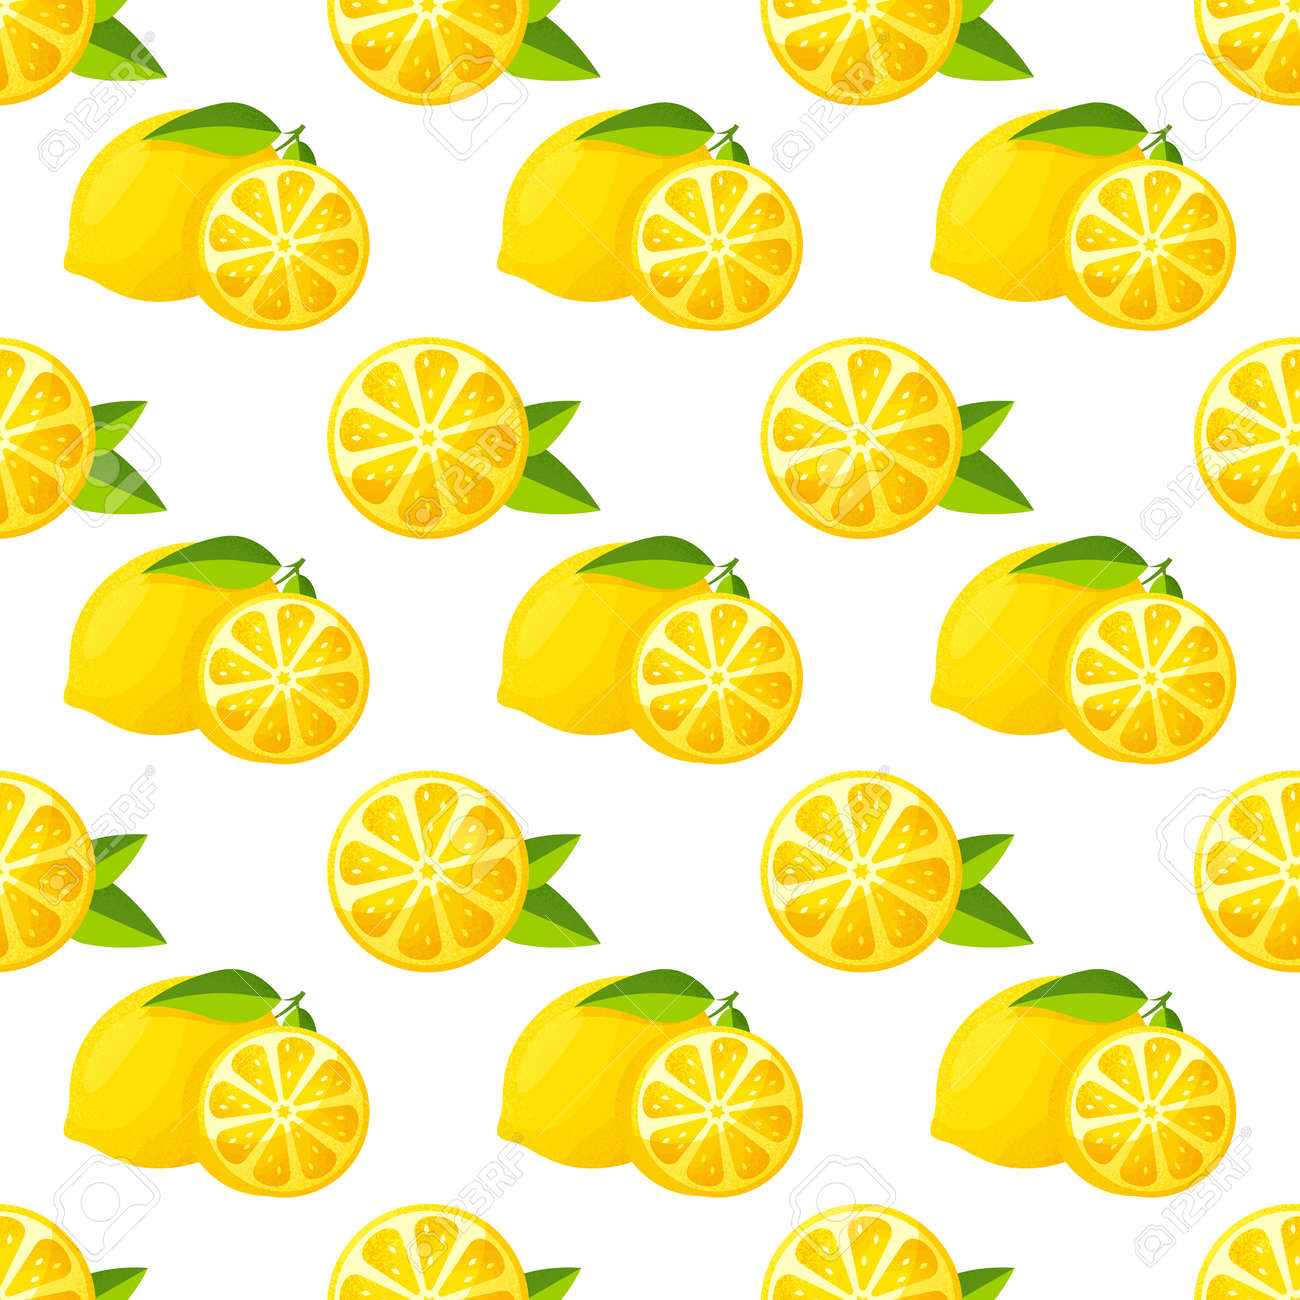 Seamless pattern with lemons. Vector background with citrus fruit and leaves. - 169243856